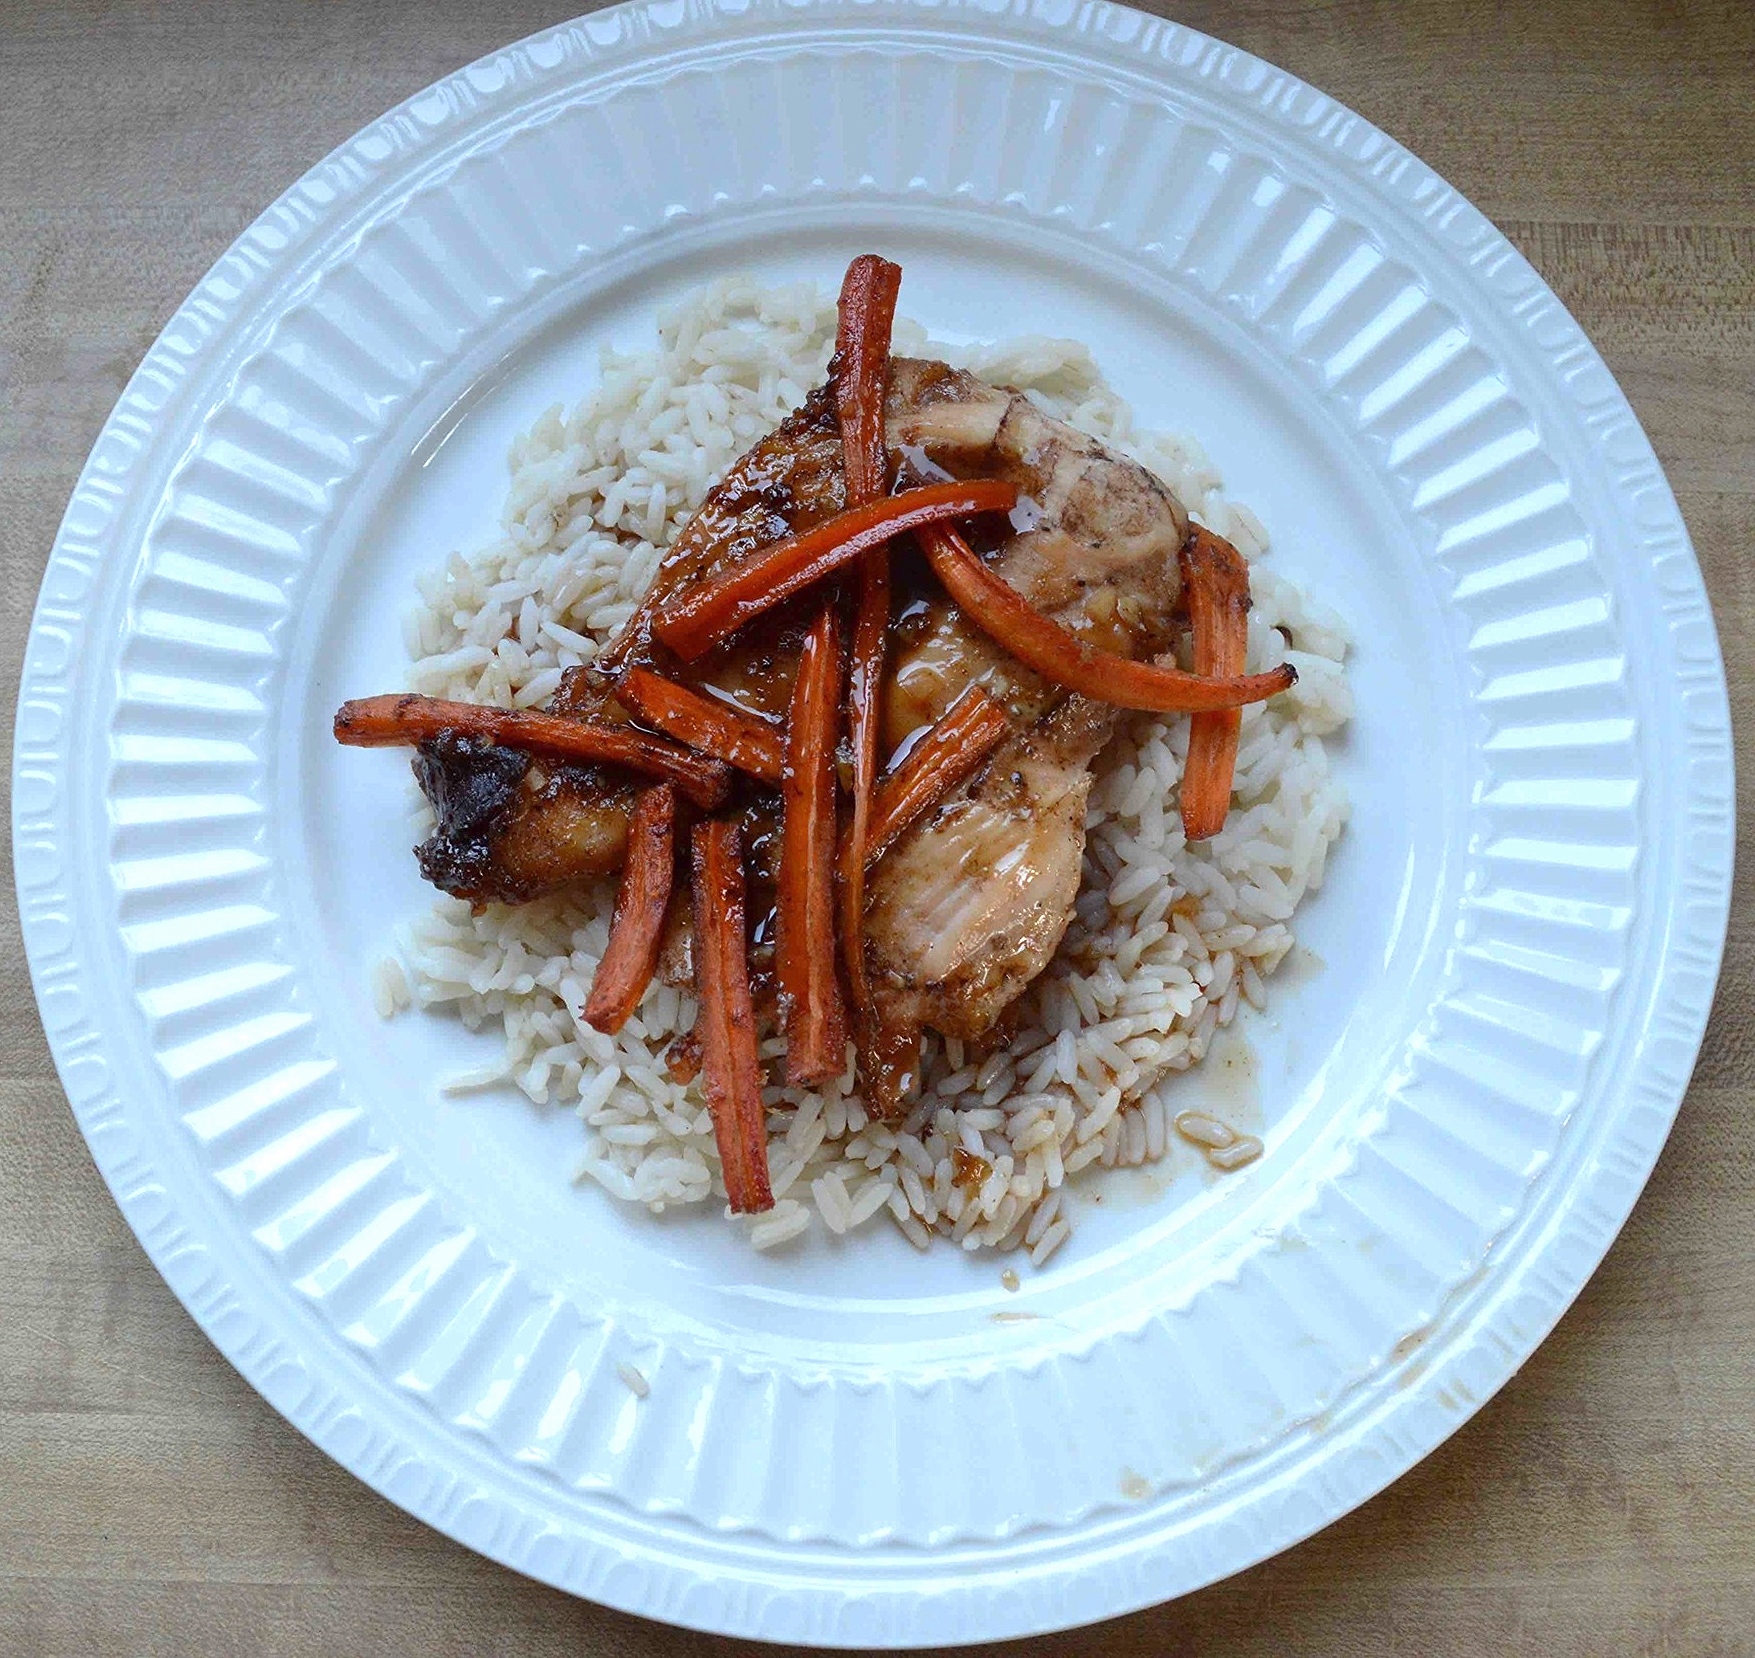 Robin's Plum-Marinated Chicken with Balsamic Roasted Carrots